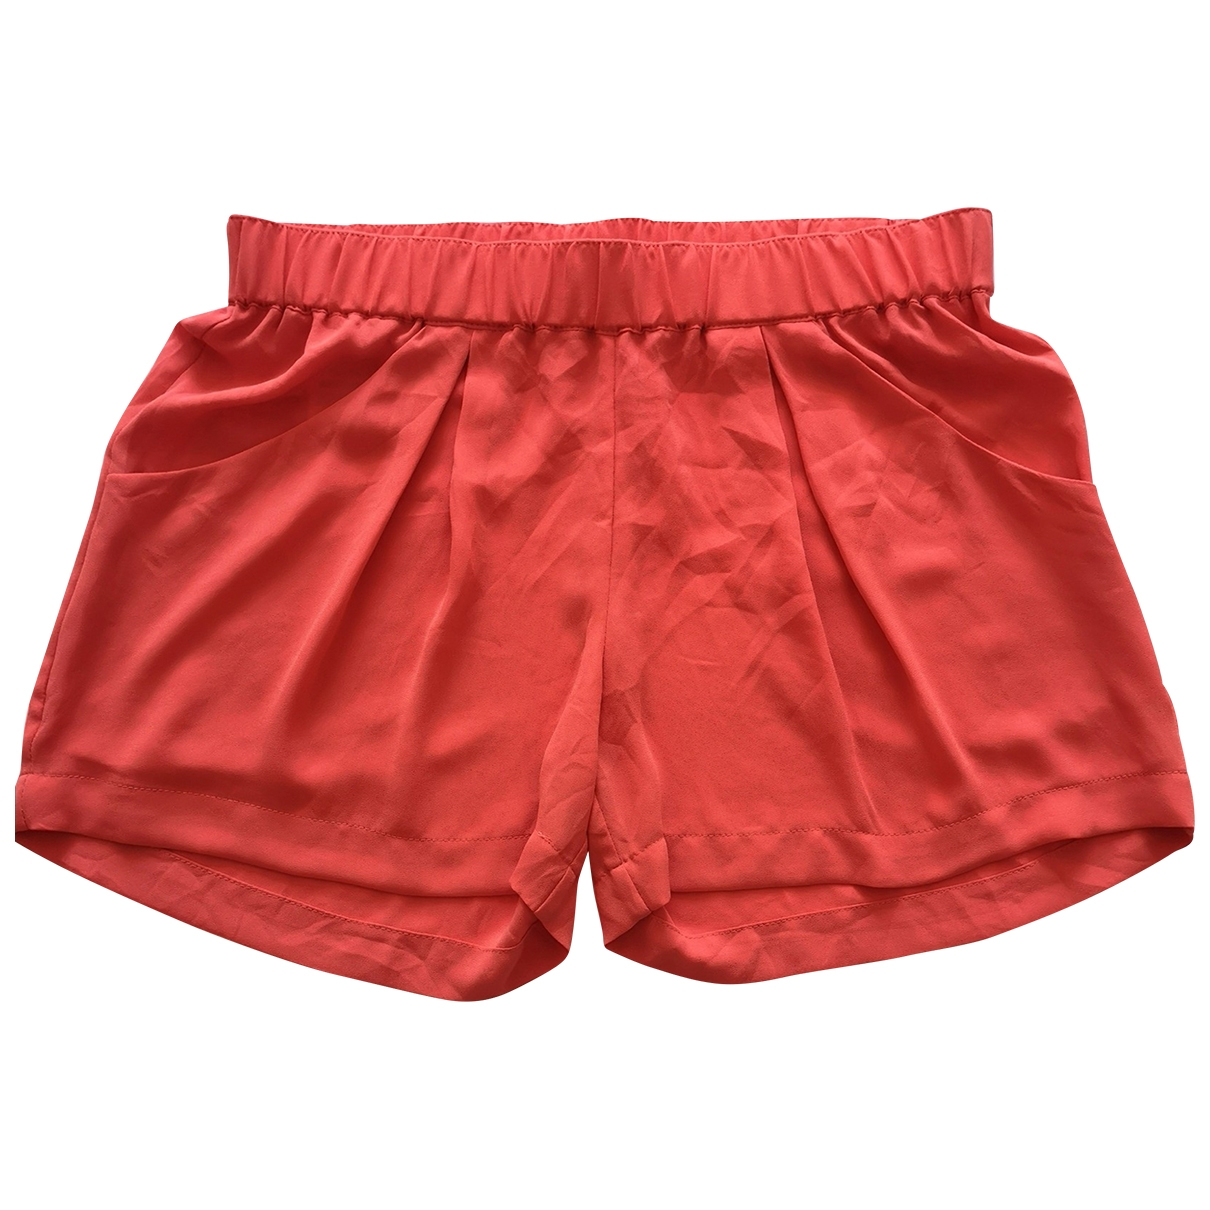 Bcbg Max Azria \N Orange Shorts for Women XS International